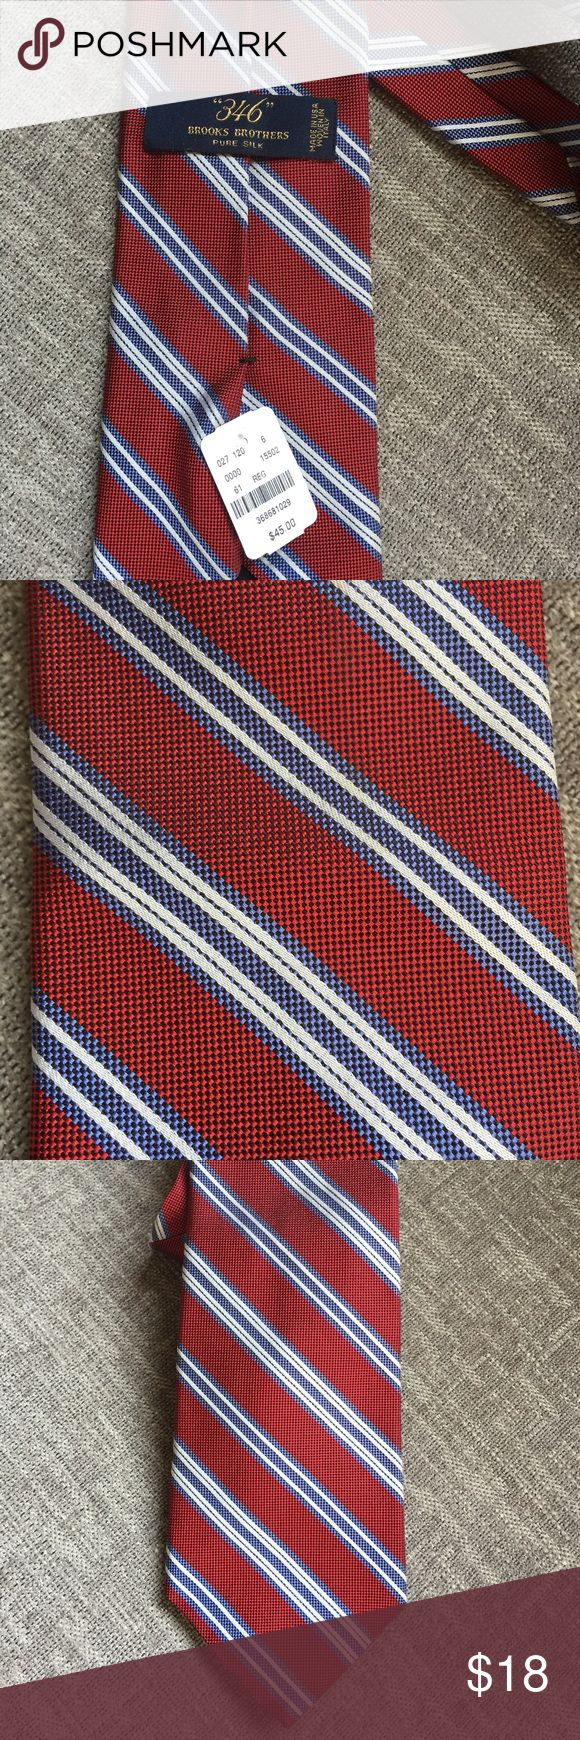 Brooks Brother Tie. NWT. Red New with tags. Brooks brothers ties. Traditional style red with blue. This one is called fire and ice. Brooks Brothers Accessories Ties